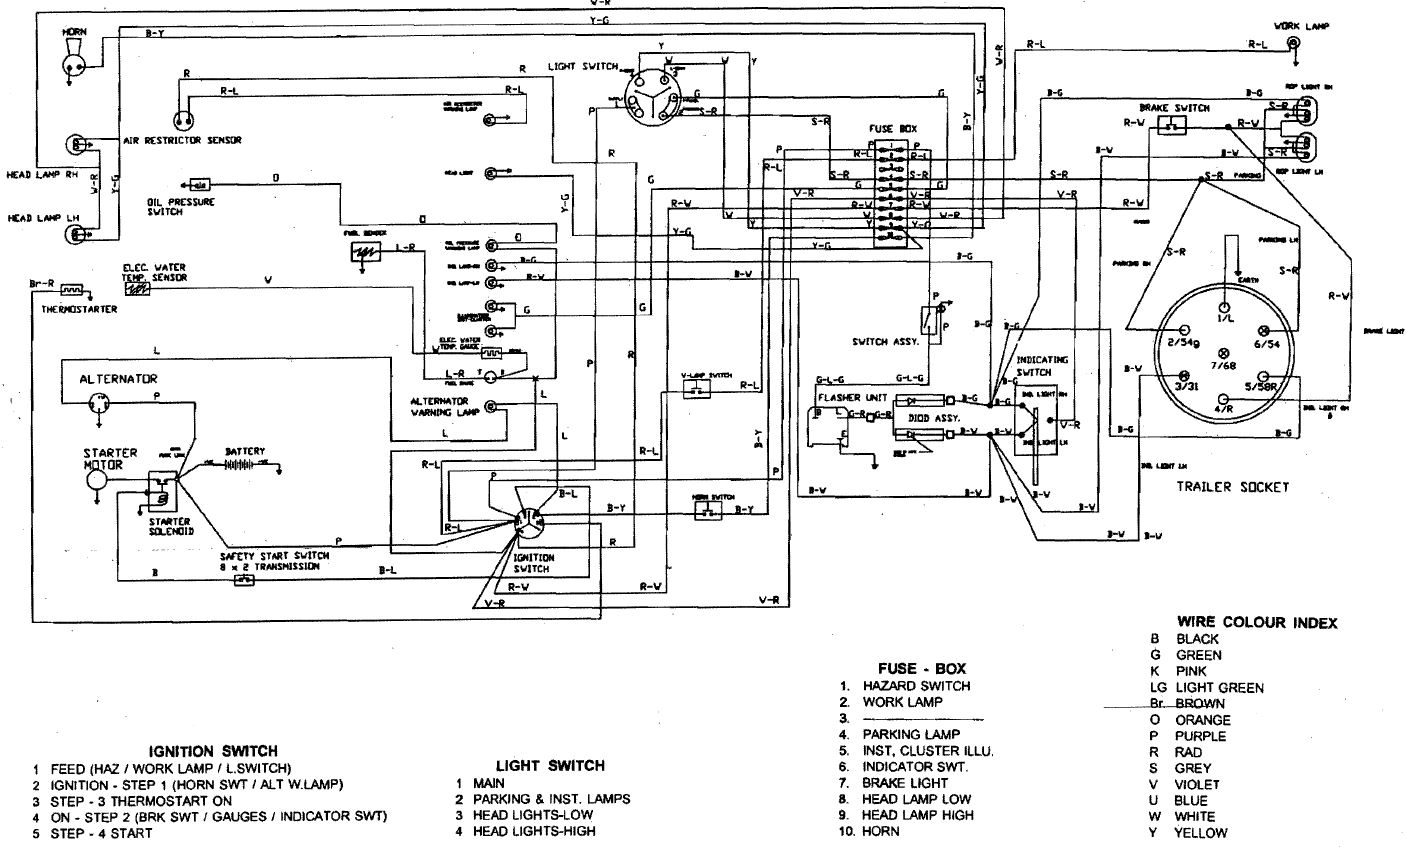 20158463319_b82d524c3d_o ignition switch wiring diagram wiring diagram for ignition switch at pacquiaovsvargaslive.co